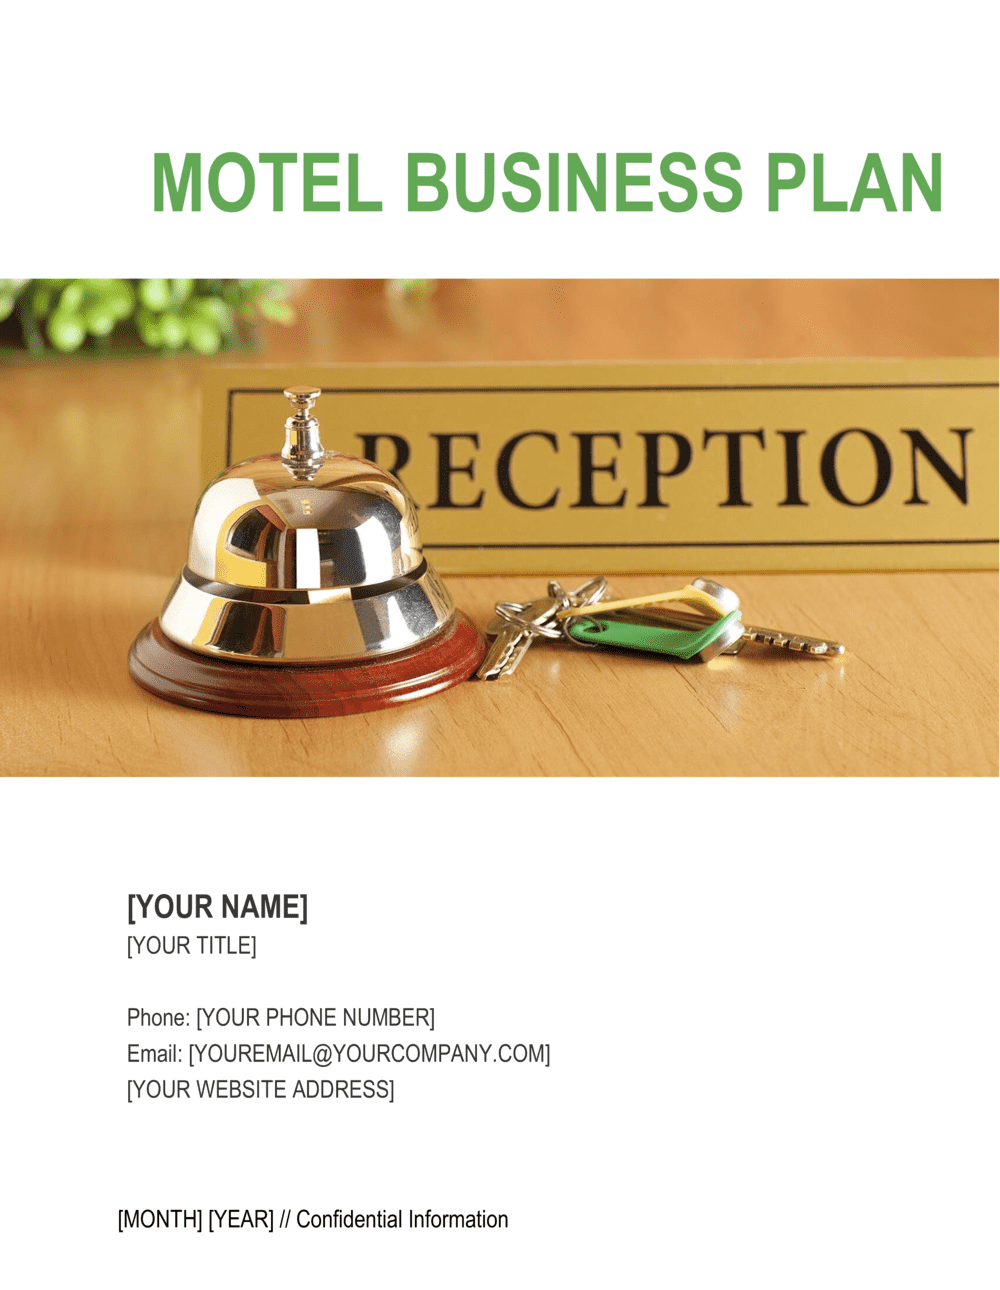 Business-in-a-Box's Motel Business Plan Template